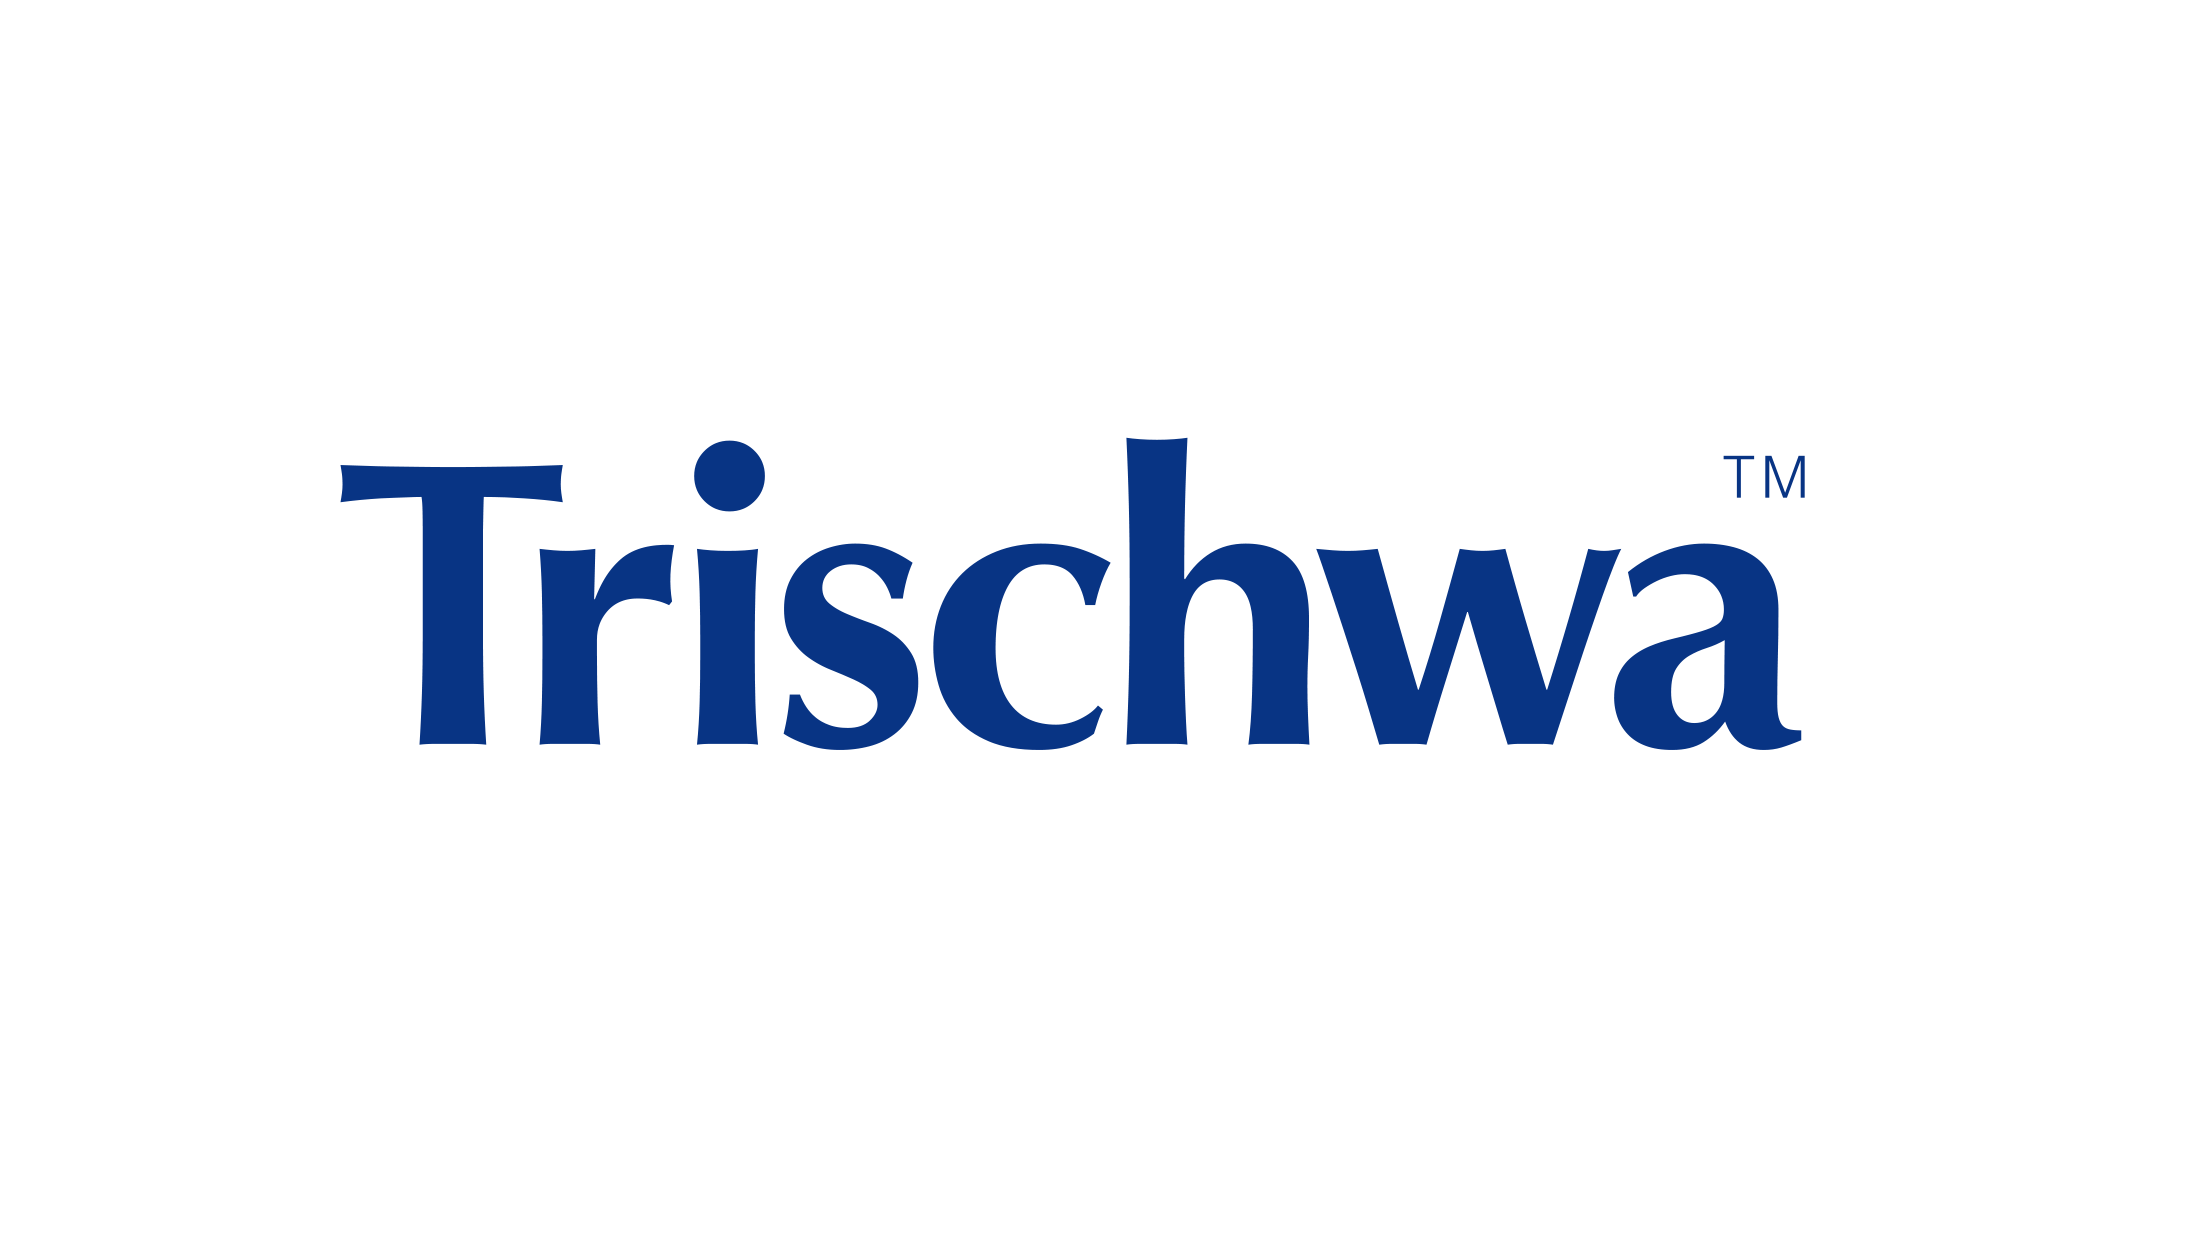 http://cdn.fnmnl.tv/wp-content/uploads/2016/09/23103057/Trischwa_logo-e1474594283704.png